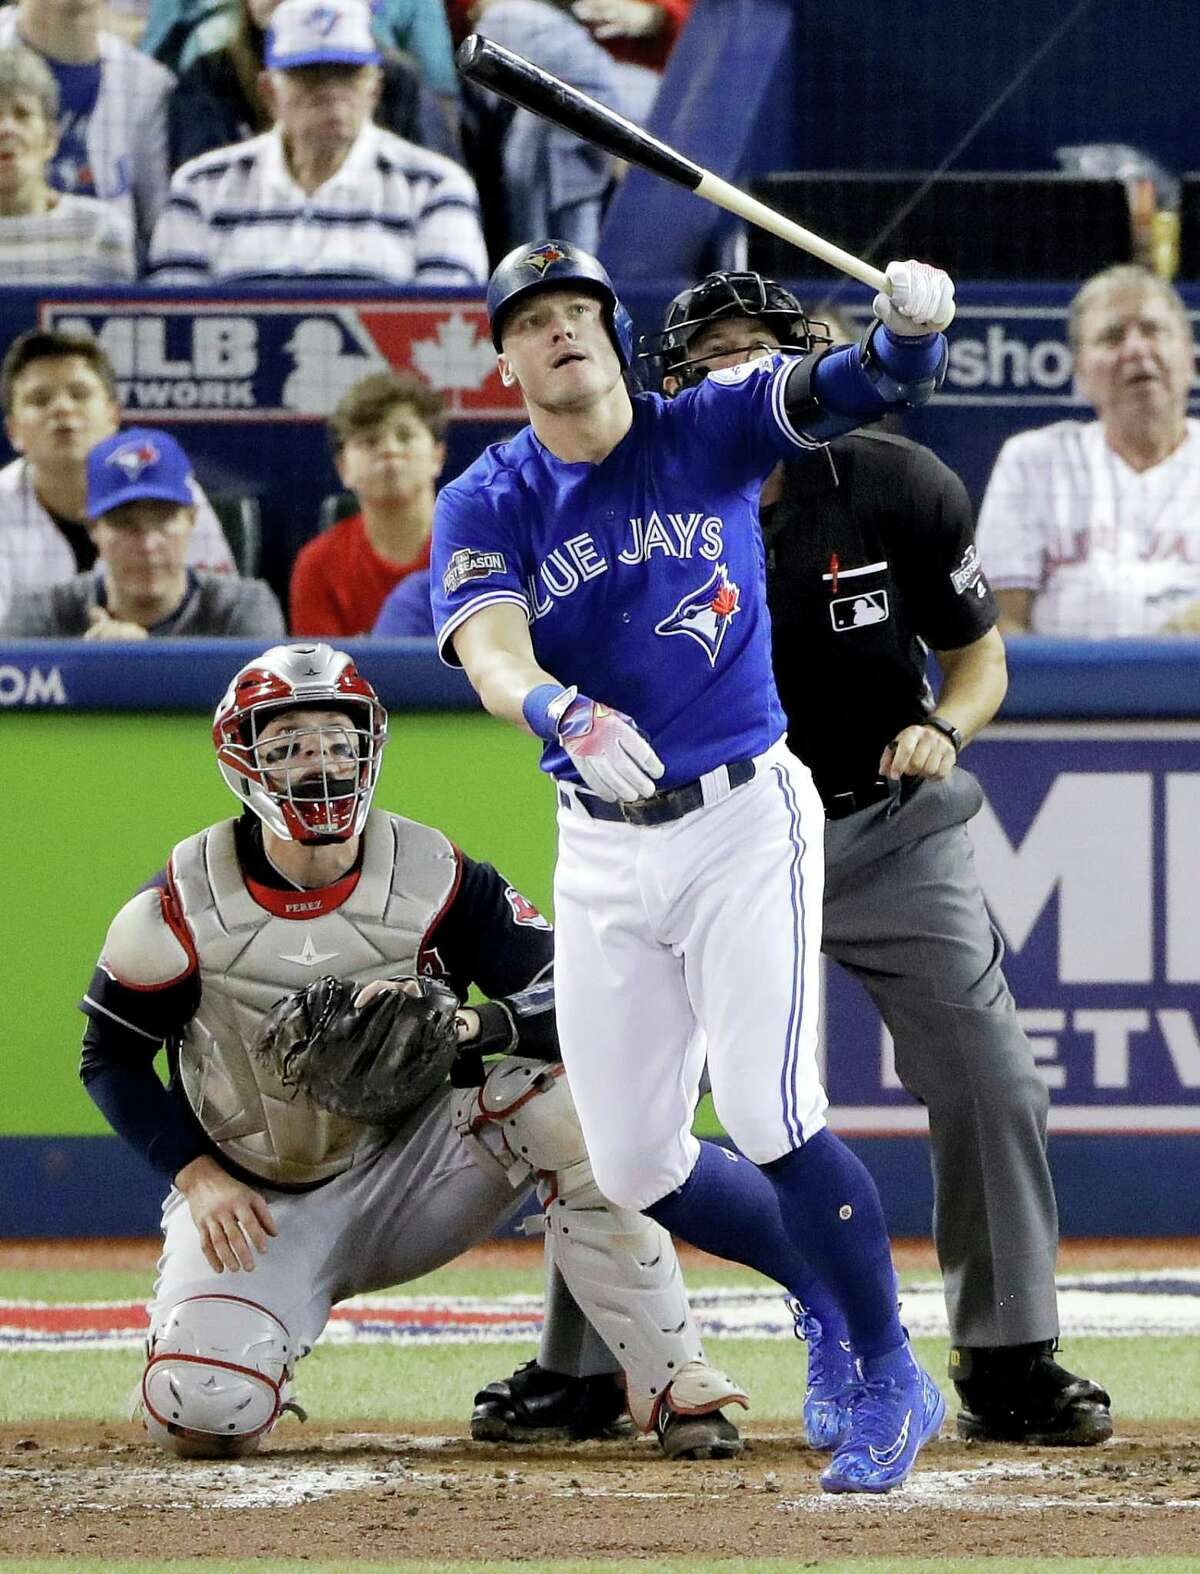 The Blue Jays' Josh Donaldson watches his home run off Indians starting pitcher Corey Kluber during the third inning Tuesday.